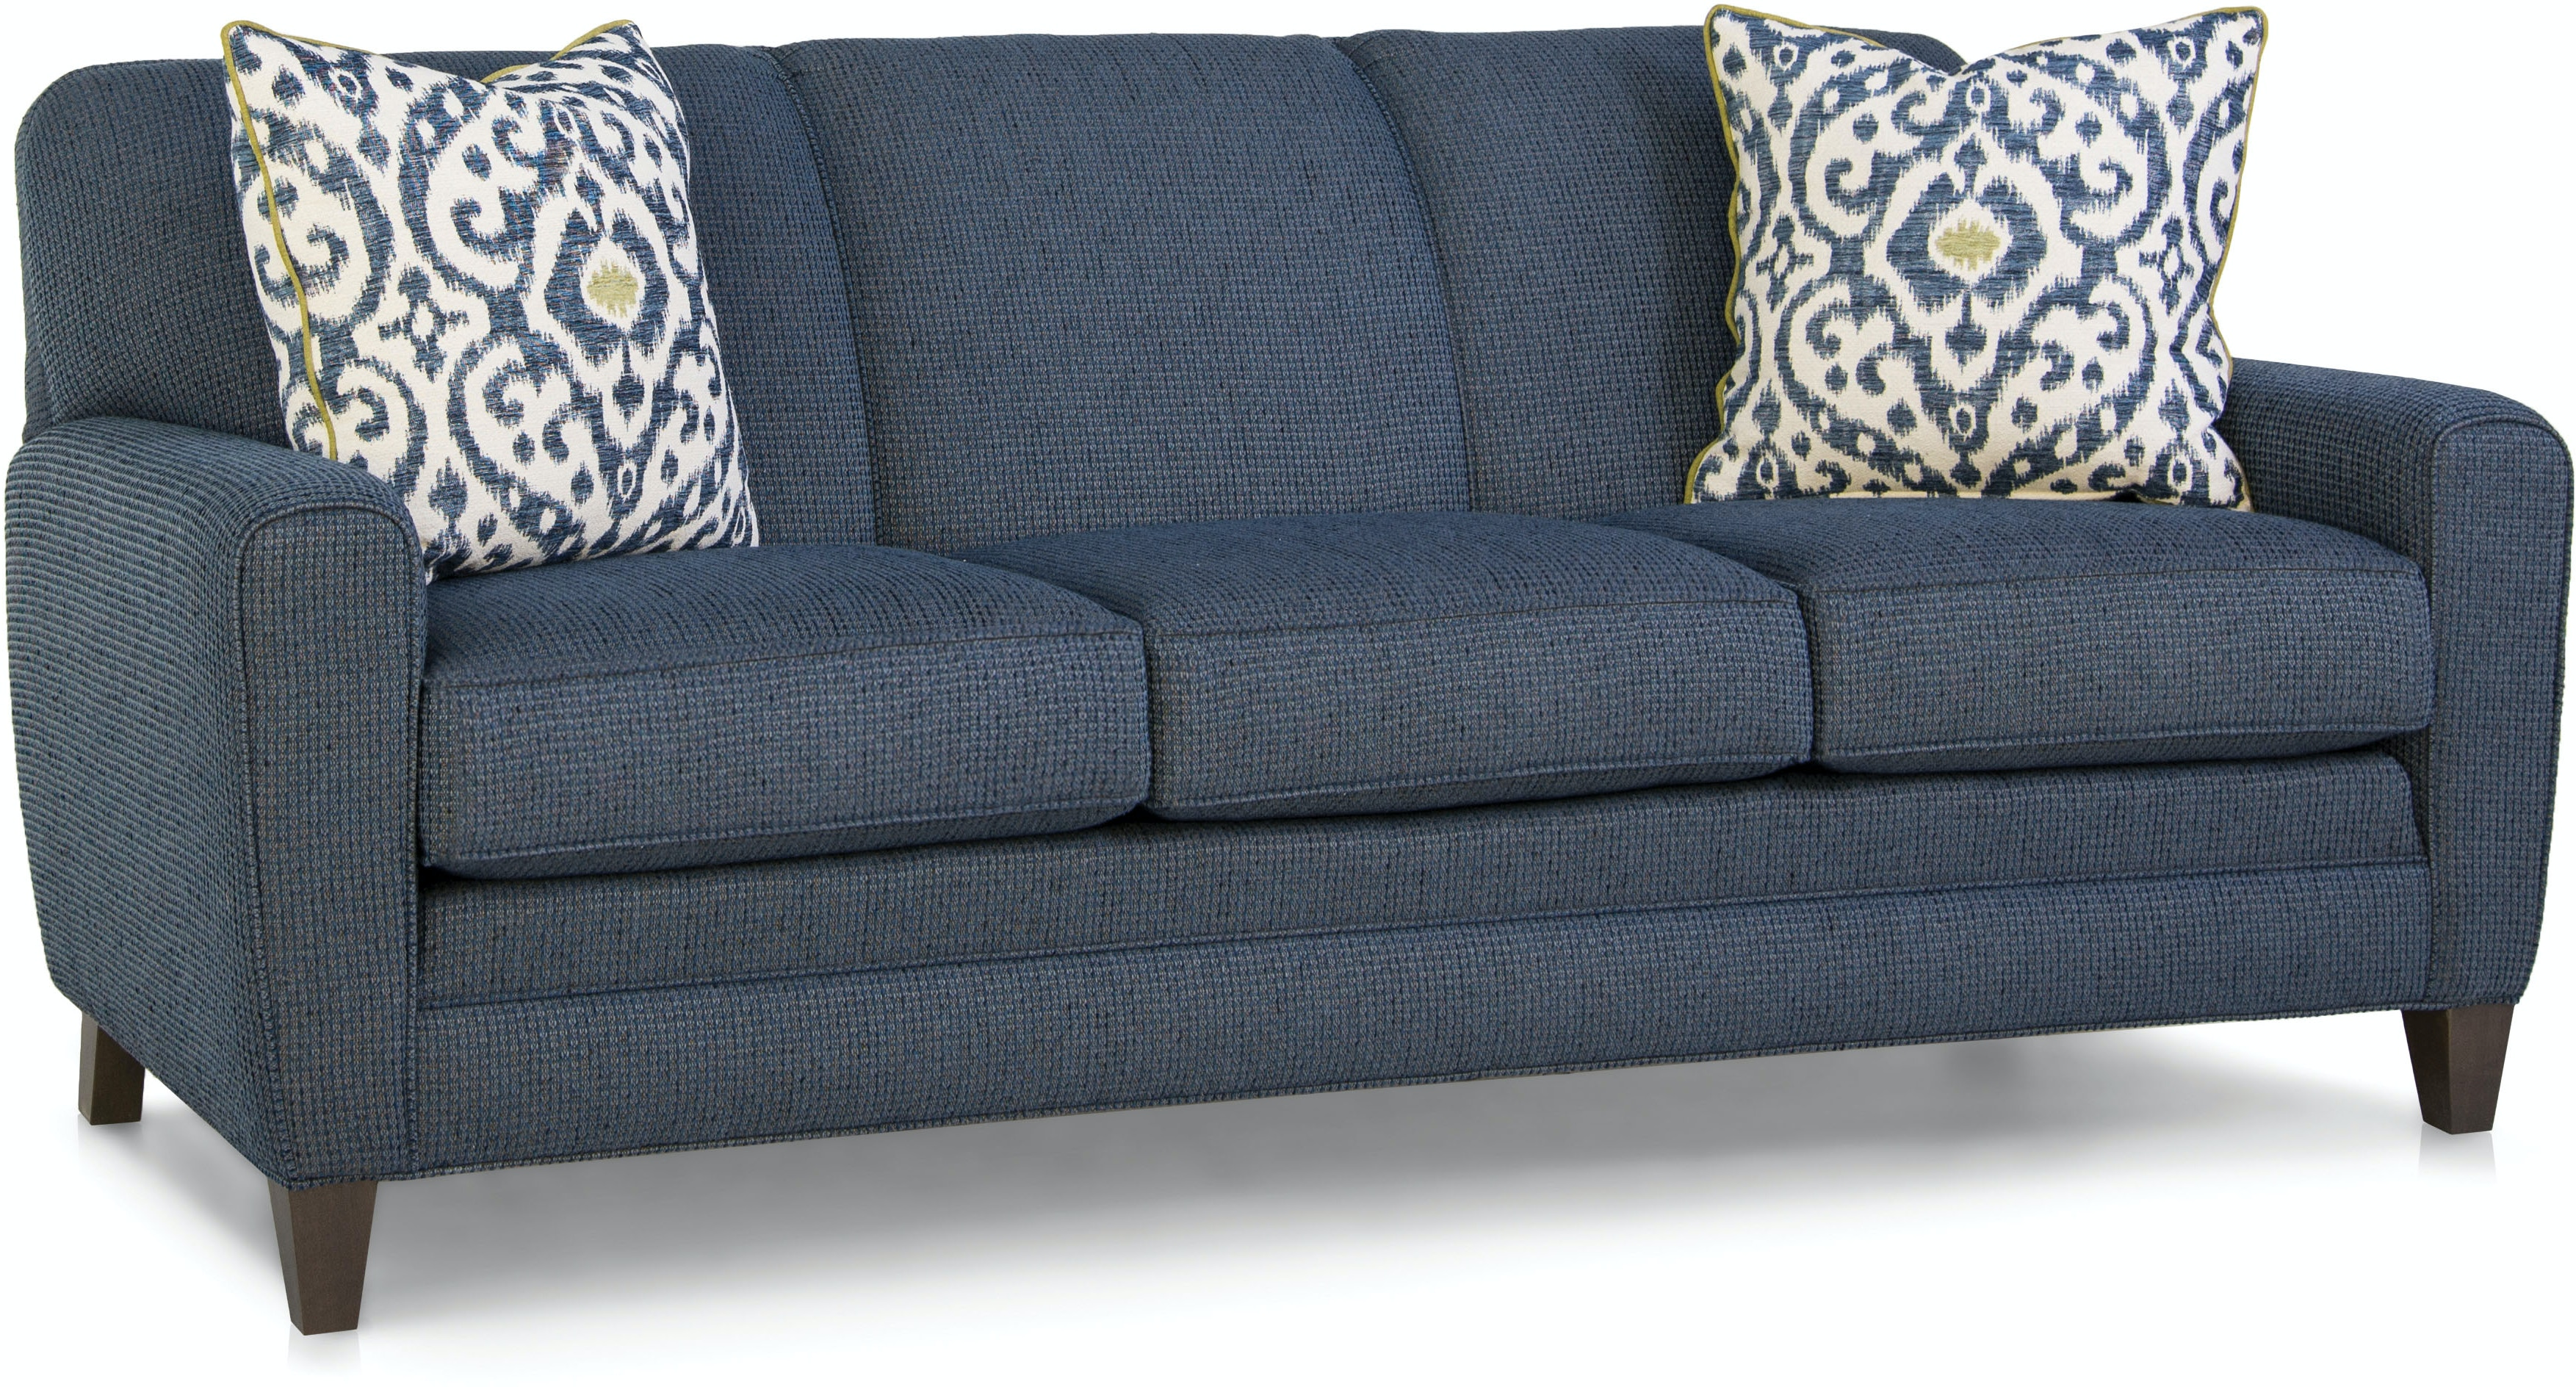 Smith Brothers Living Room Sofa 225 10 Textile amp Timber  : 225 10 from www.textileandtimber.com size 1024 x 768 jpeg 50kB